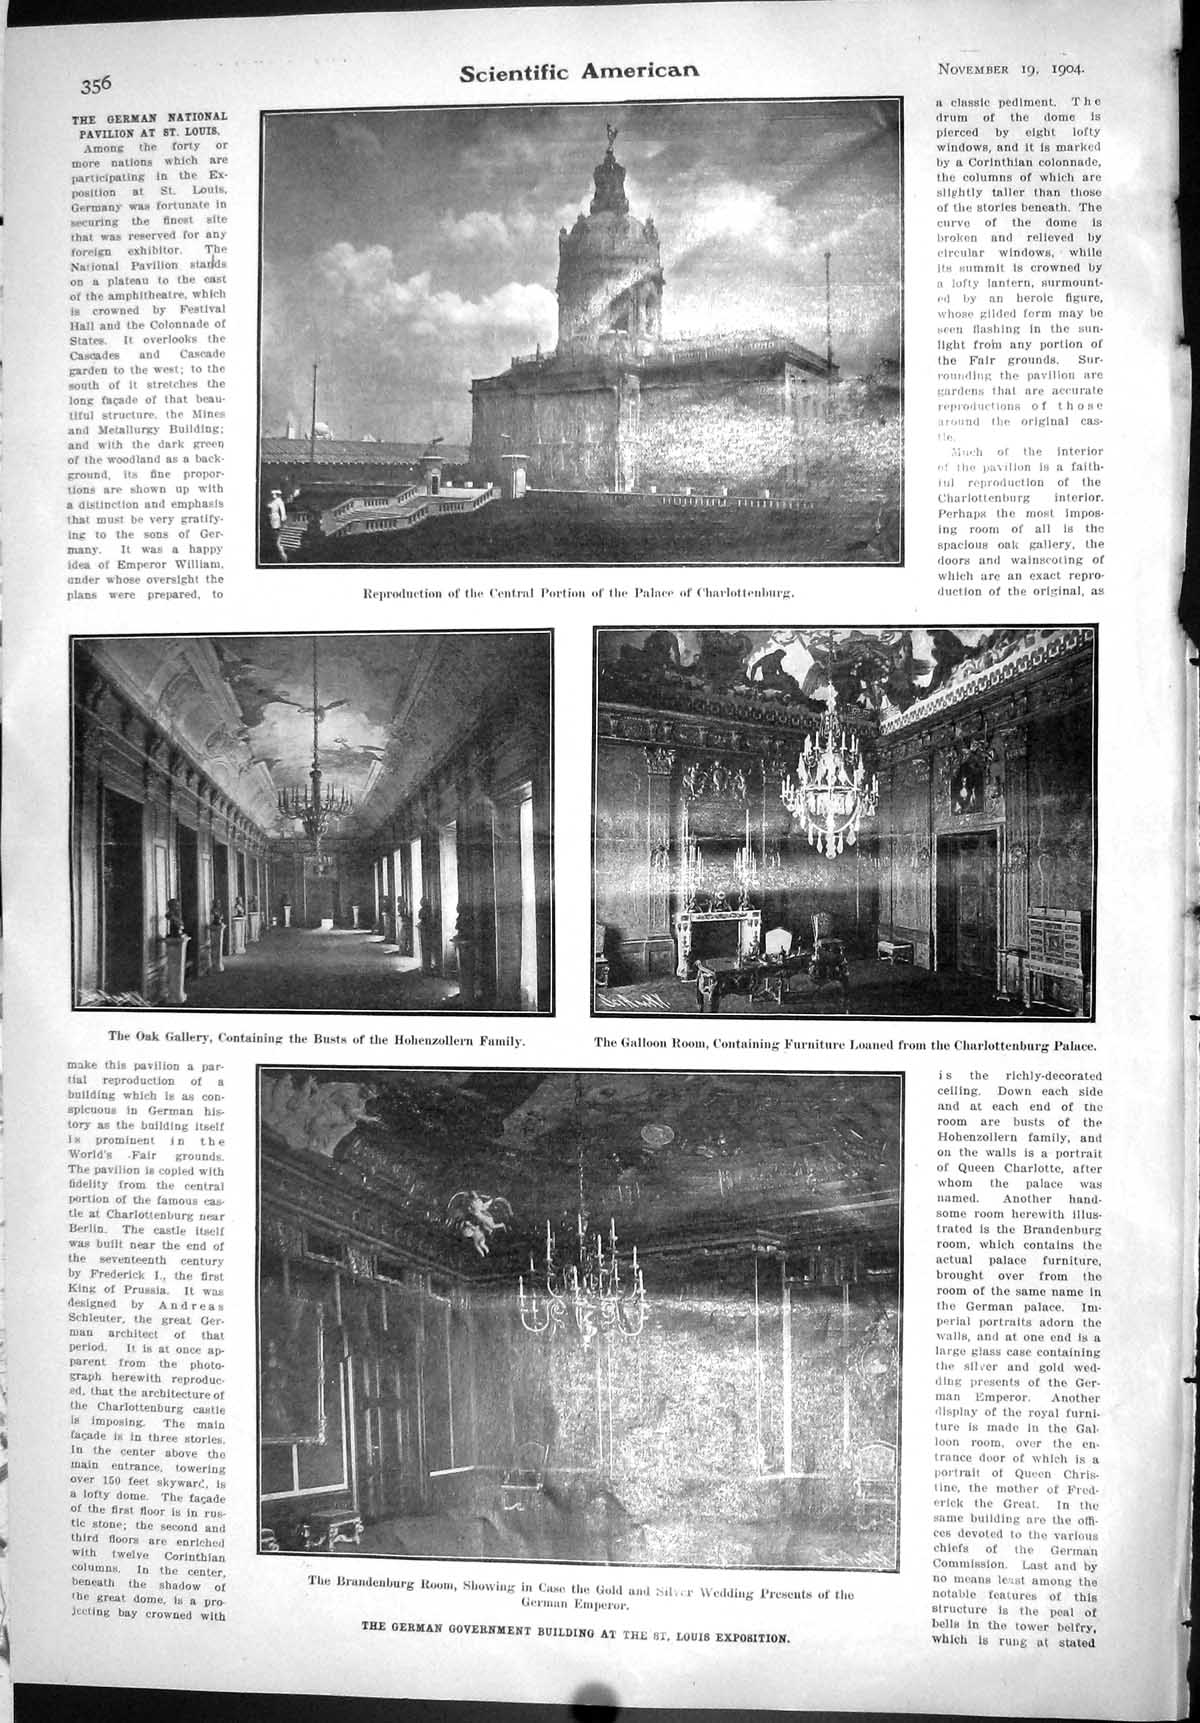 [Scientific American 1904 German Government Building Louis Palace 356J091 ]